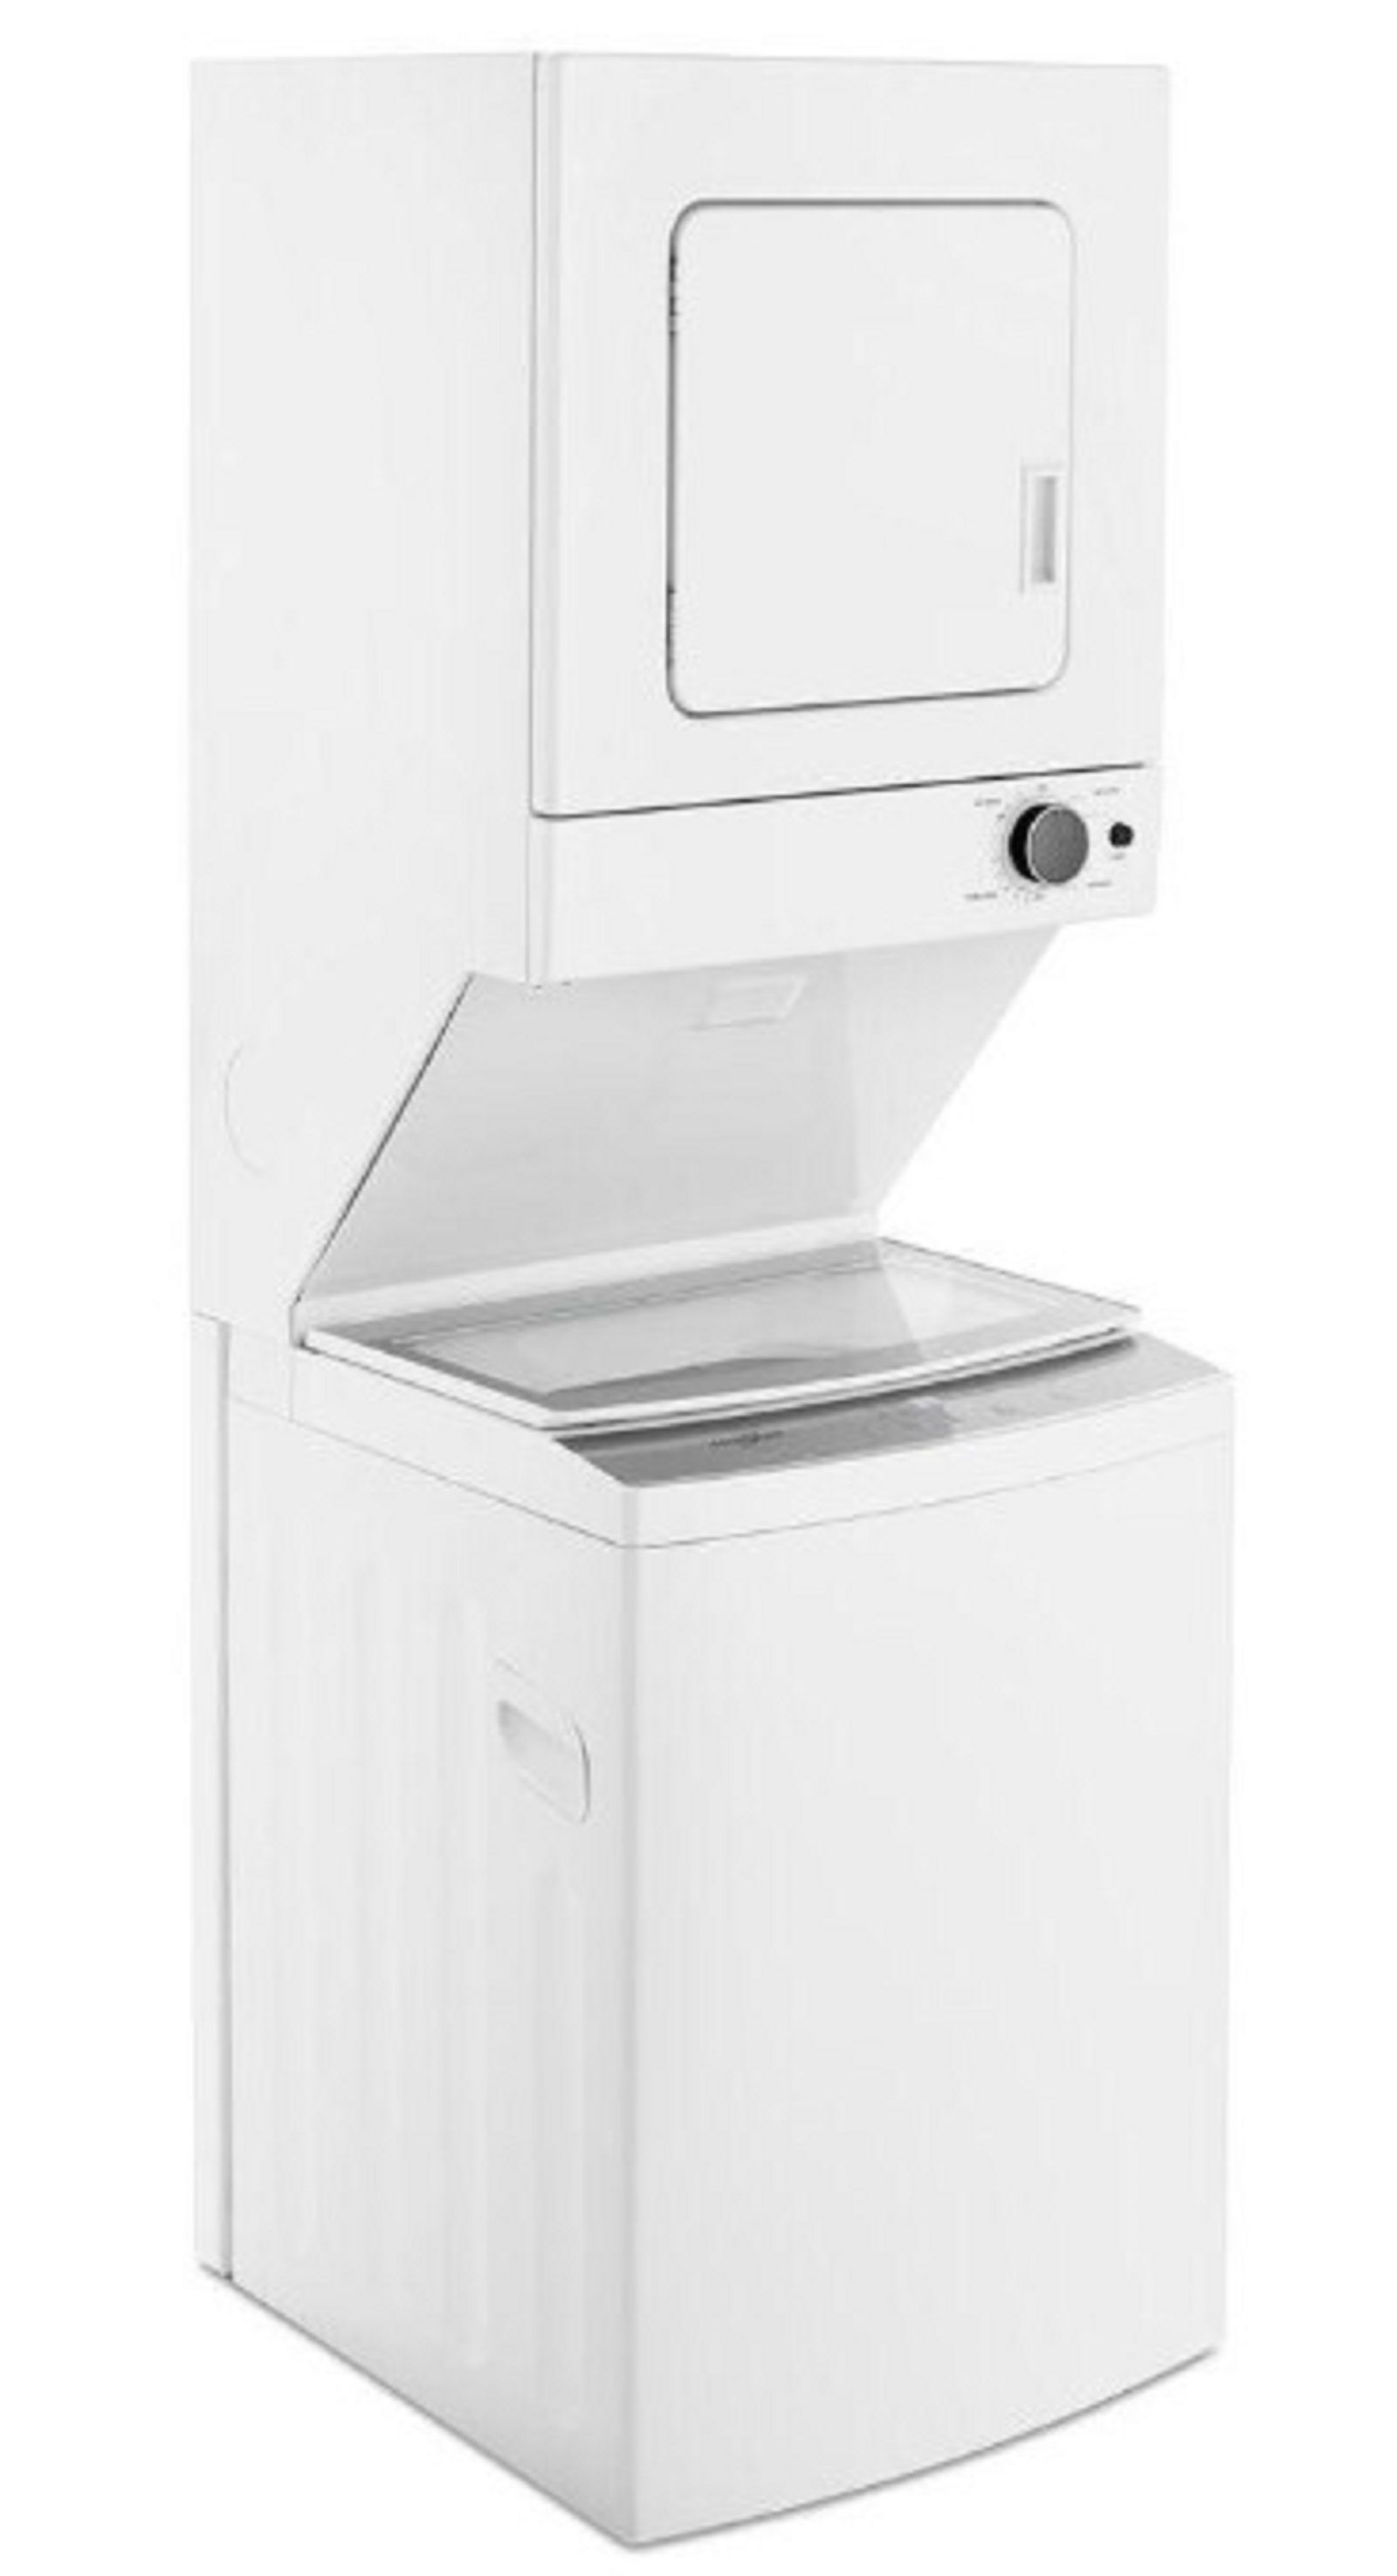 Whirlpool Wet4027hw High Efficiency White Laundry Center With